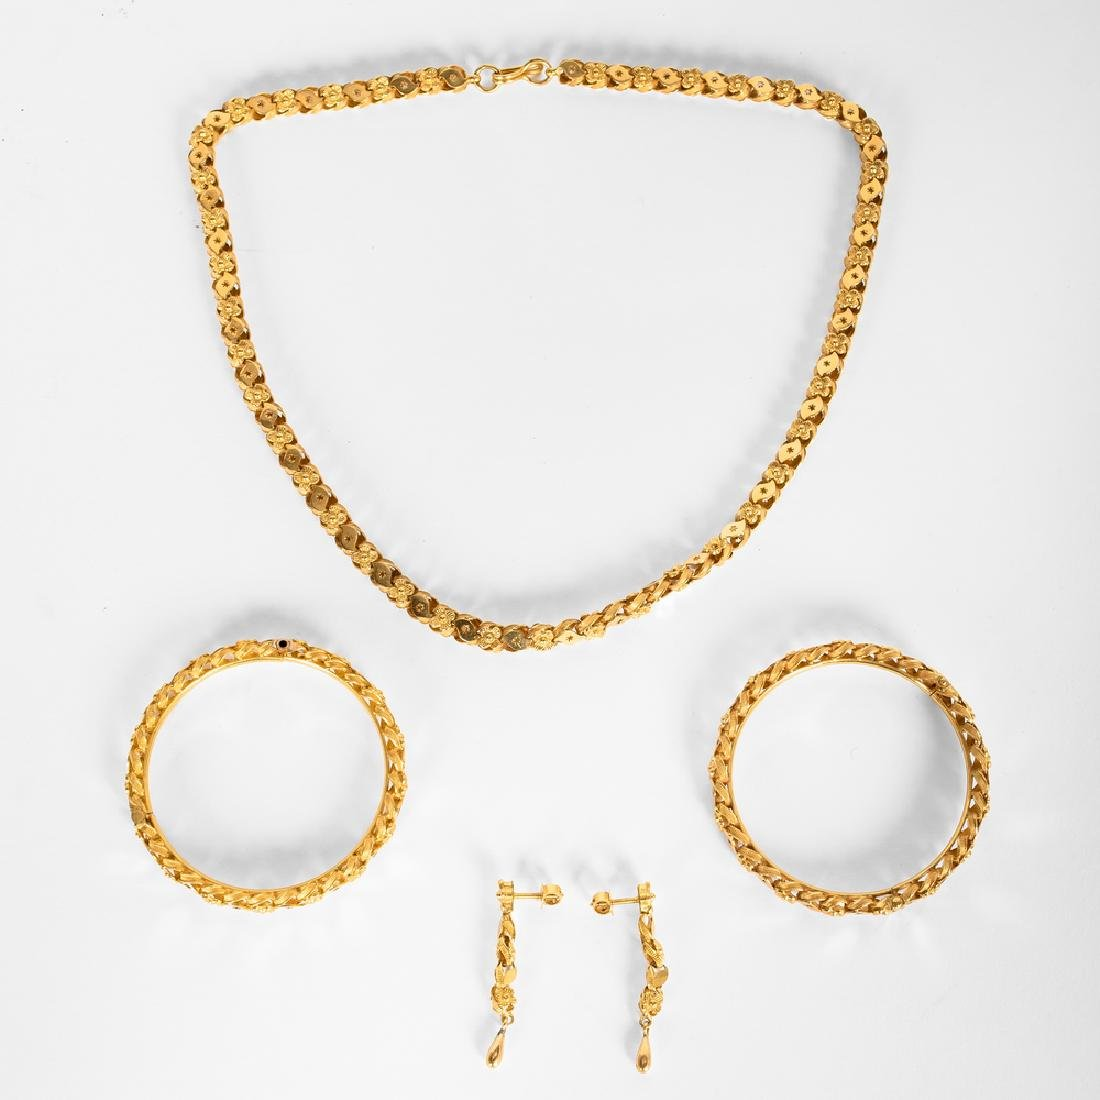 22 KARAT GOLD NECKLACE, BRACELET, & EARRING SUITE